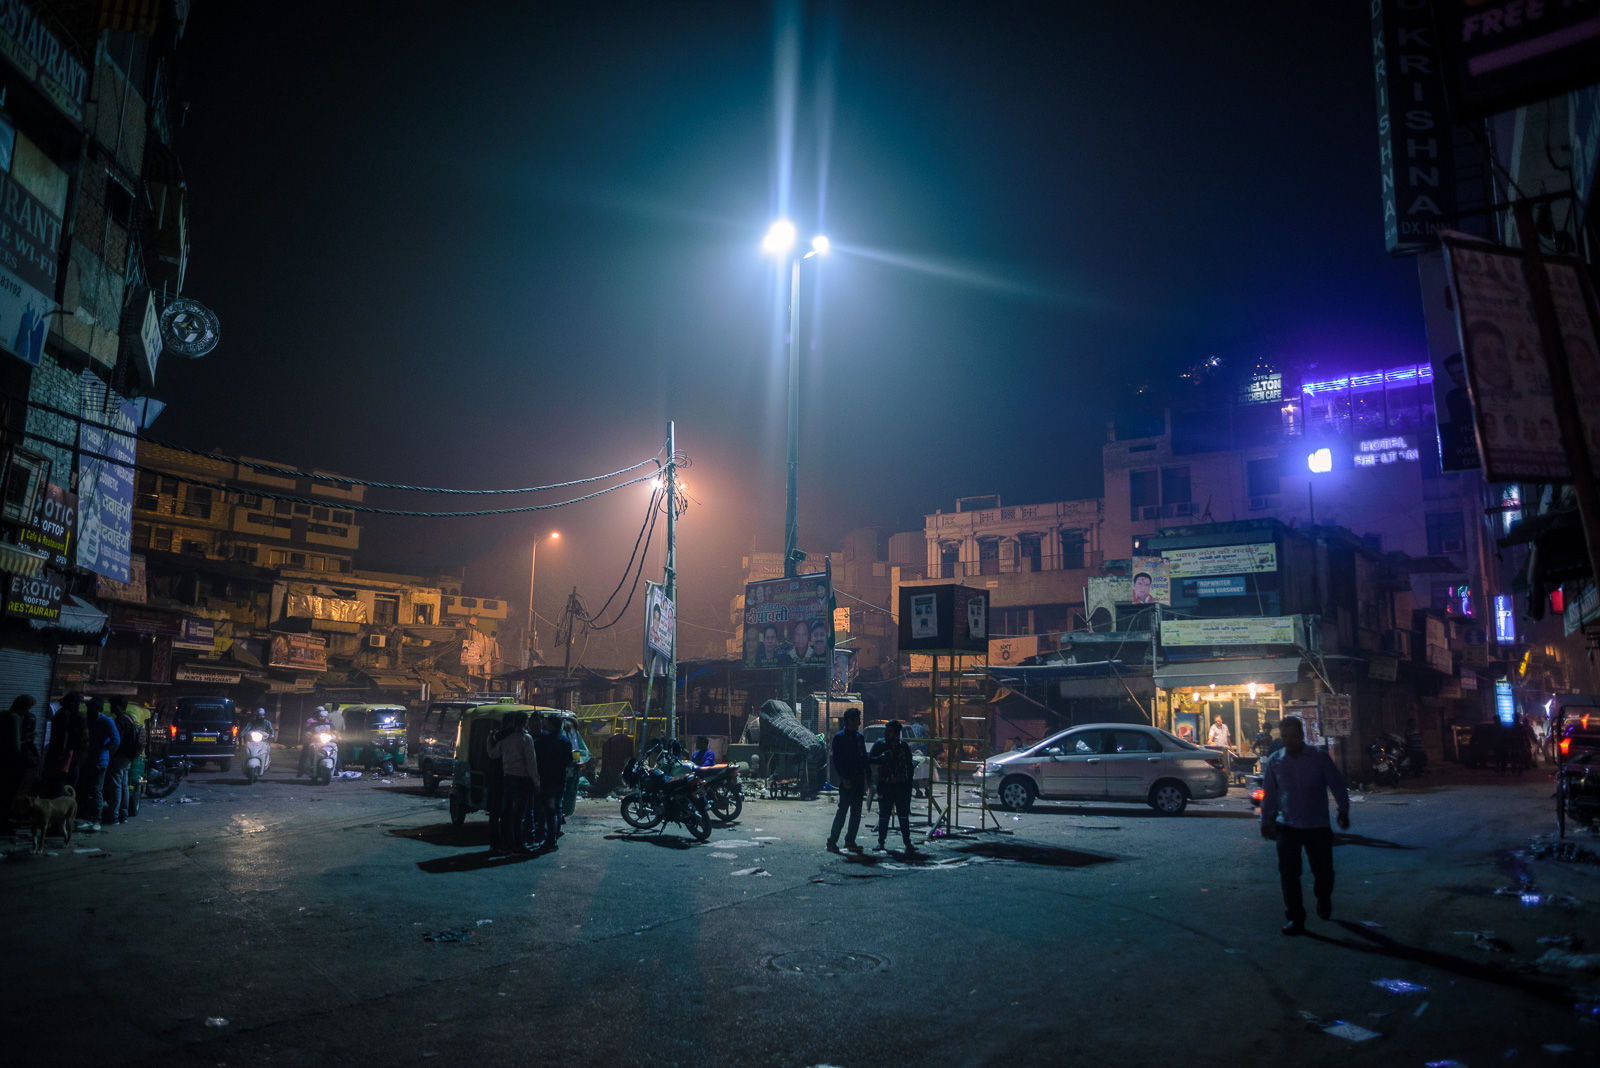 Main Bazar, New Delhi. Chaotic, dirty and noisy, but when night comes, it's a completely different scenario. Suddenly became a futuristic, imaginary world.